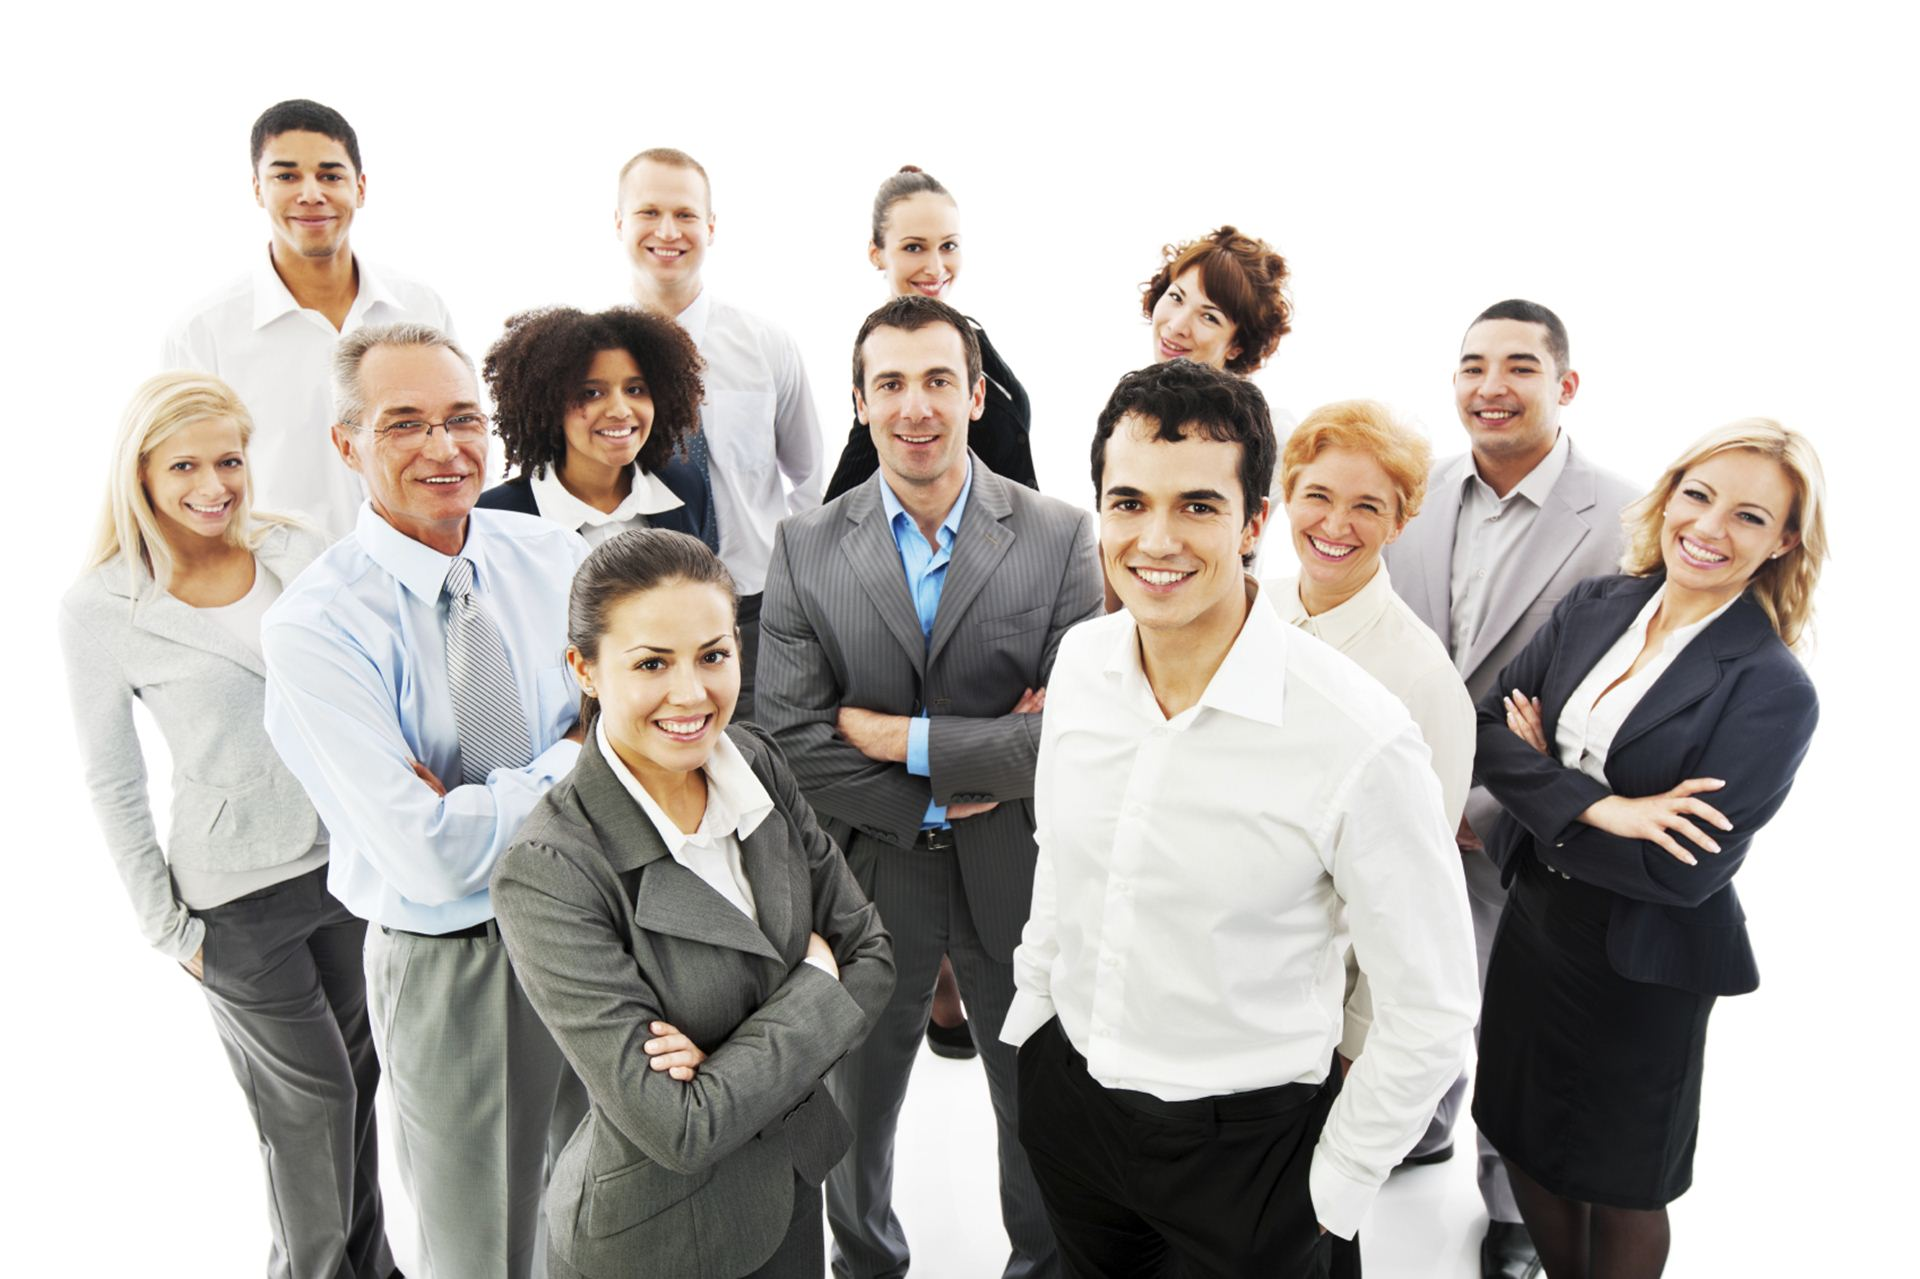 Group of a happy Business People standing together and looking at the camera.  Isolated on white background. [url=http://www.istockphoto.com/search/lightbox/9786622][img]http://dl.dropbox.com/u/40117171/business.jpg[/img][/url]